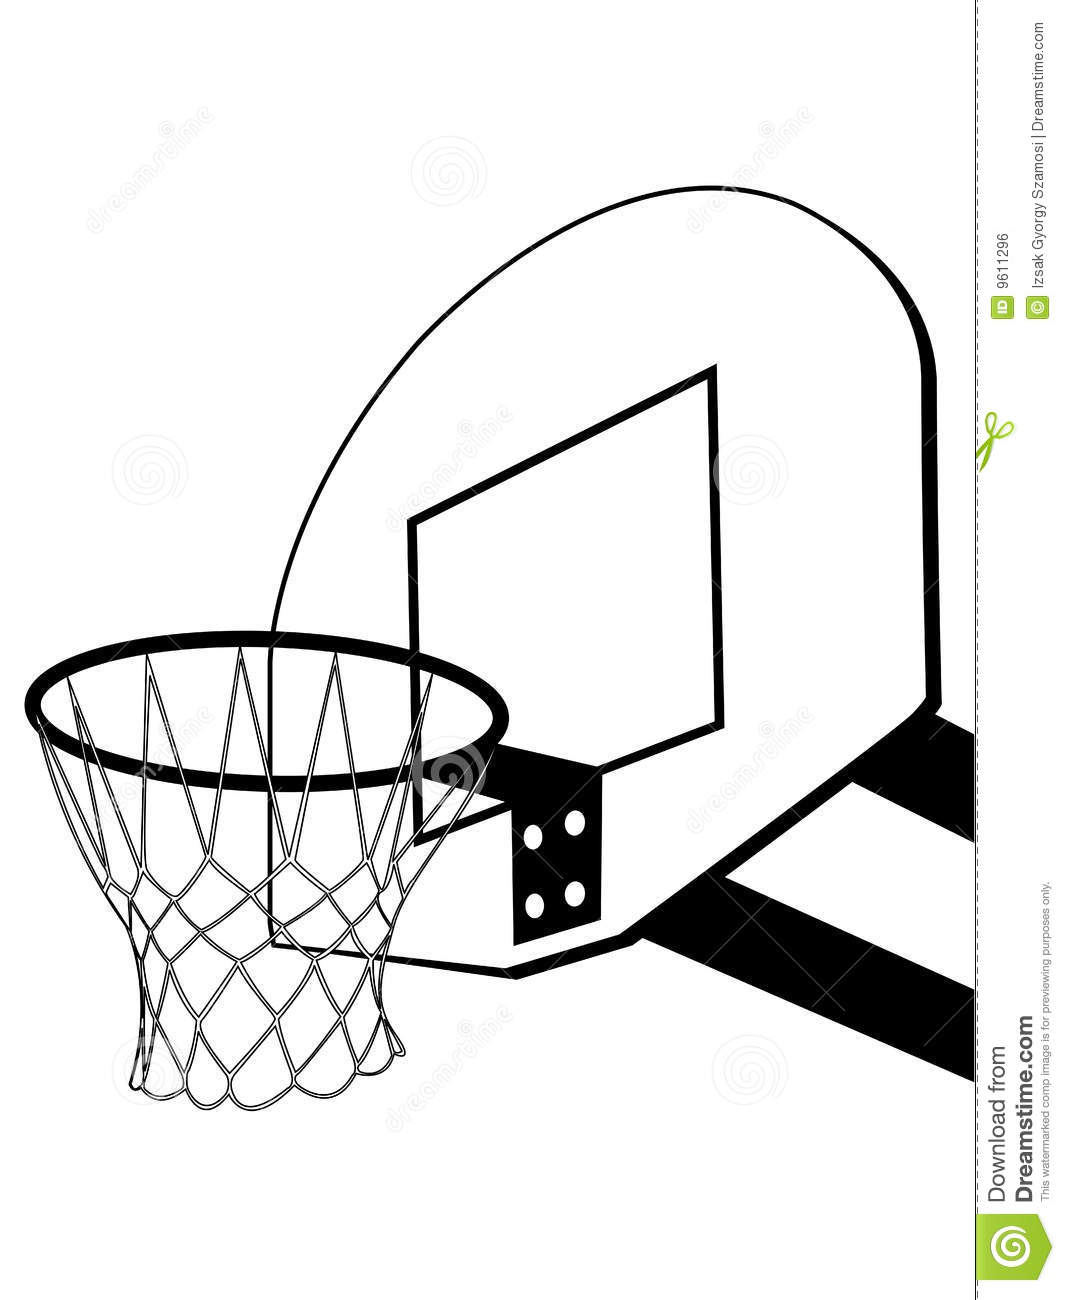 Drawing at getdrawings com. Basketball clipart simple